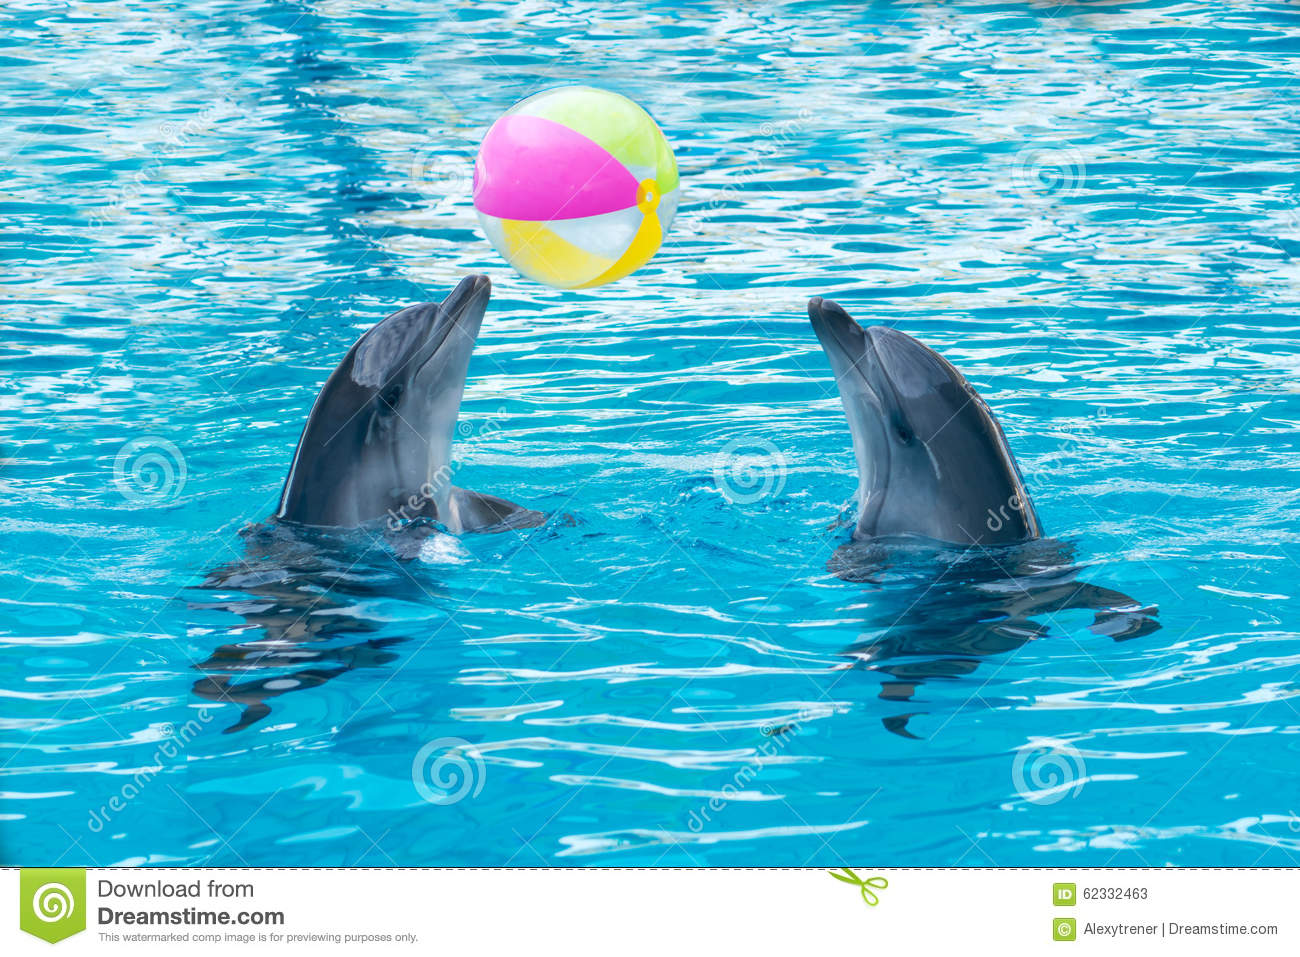 images of dolphins playing - photo #21